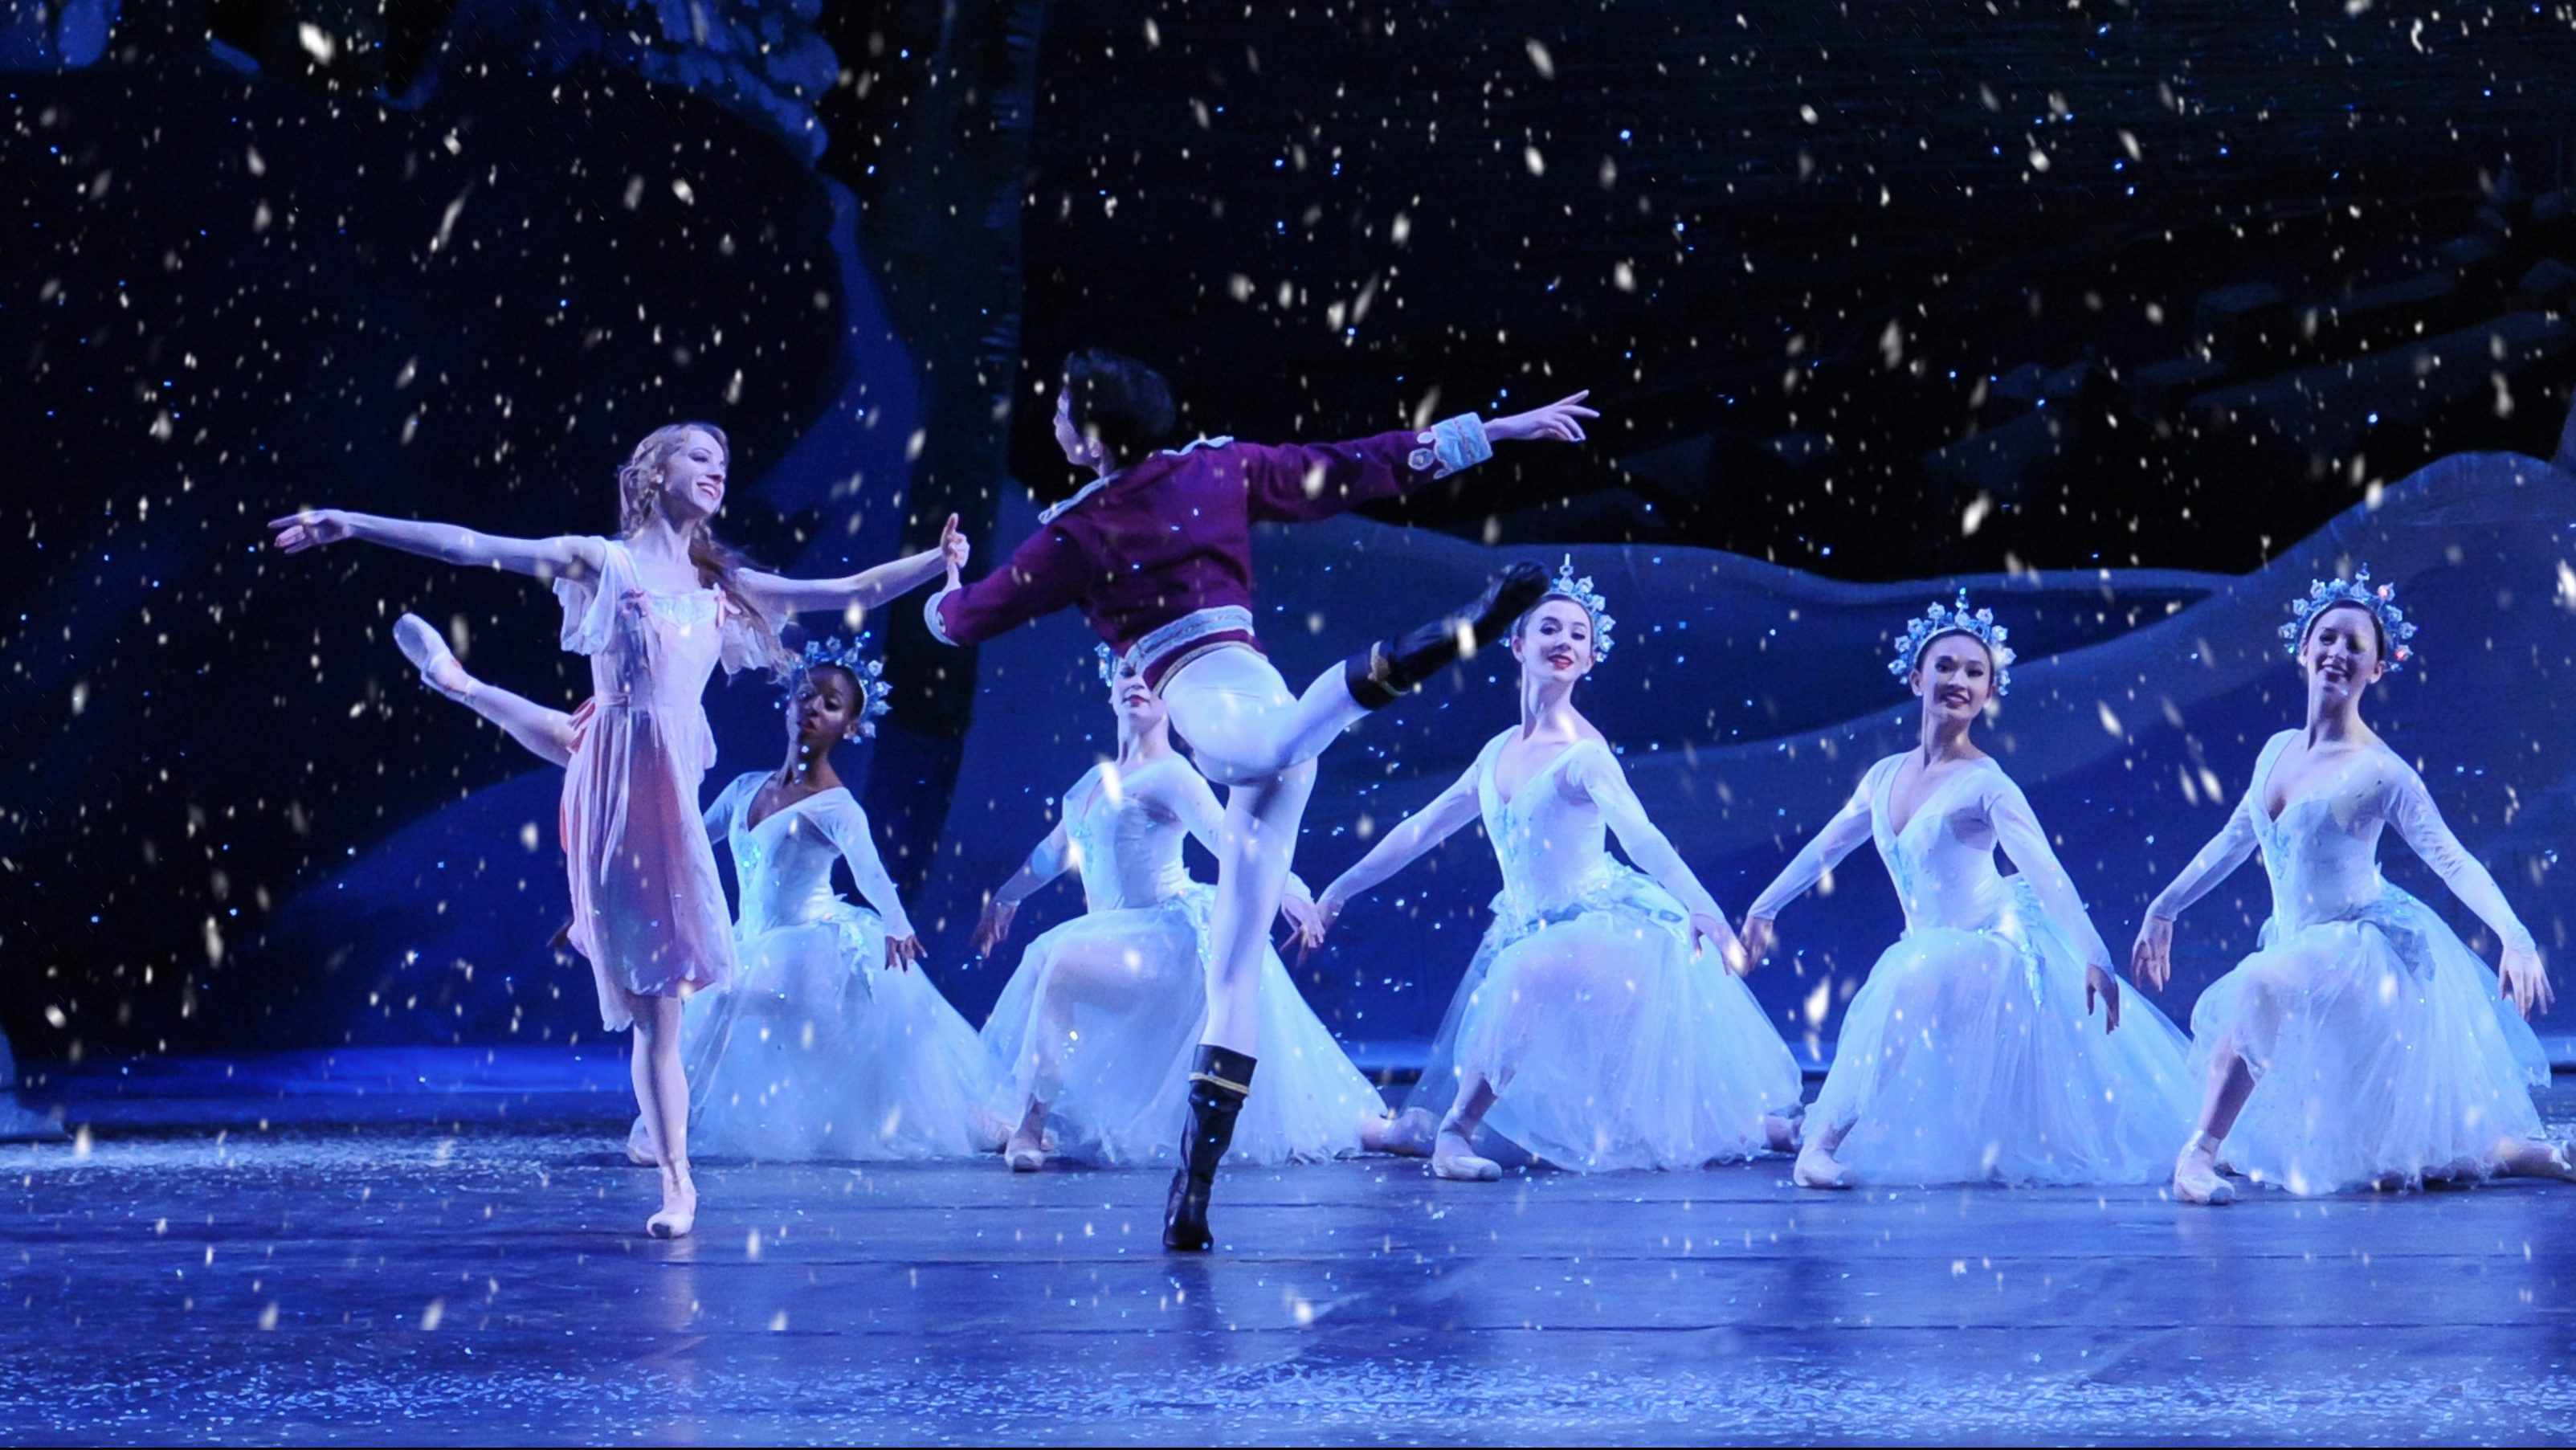 Previous productions of 'The Nutcracker' have sparkled and Pittsburgh Ballet Theatre vows to do it again this year. (photo: Rich Sofranko)